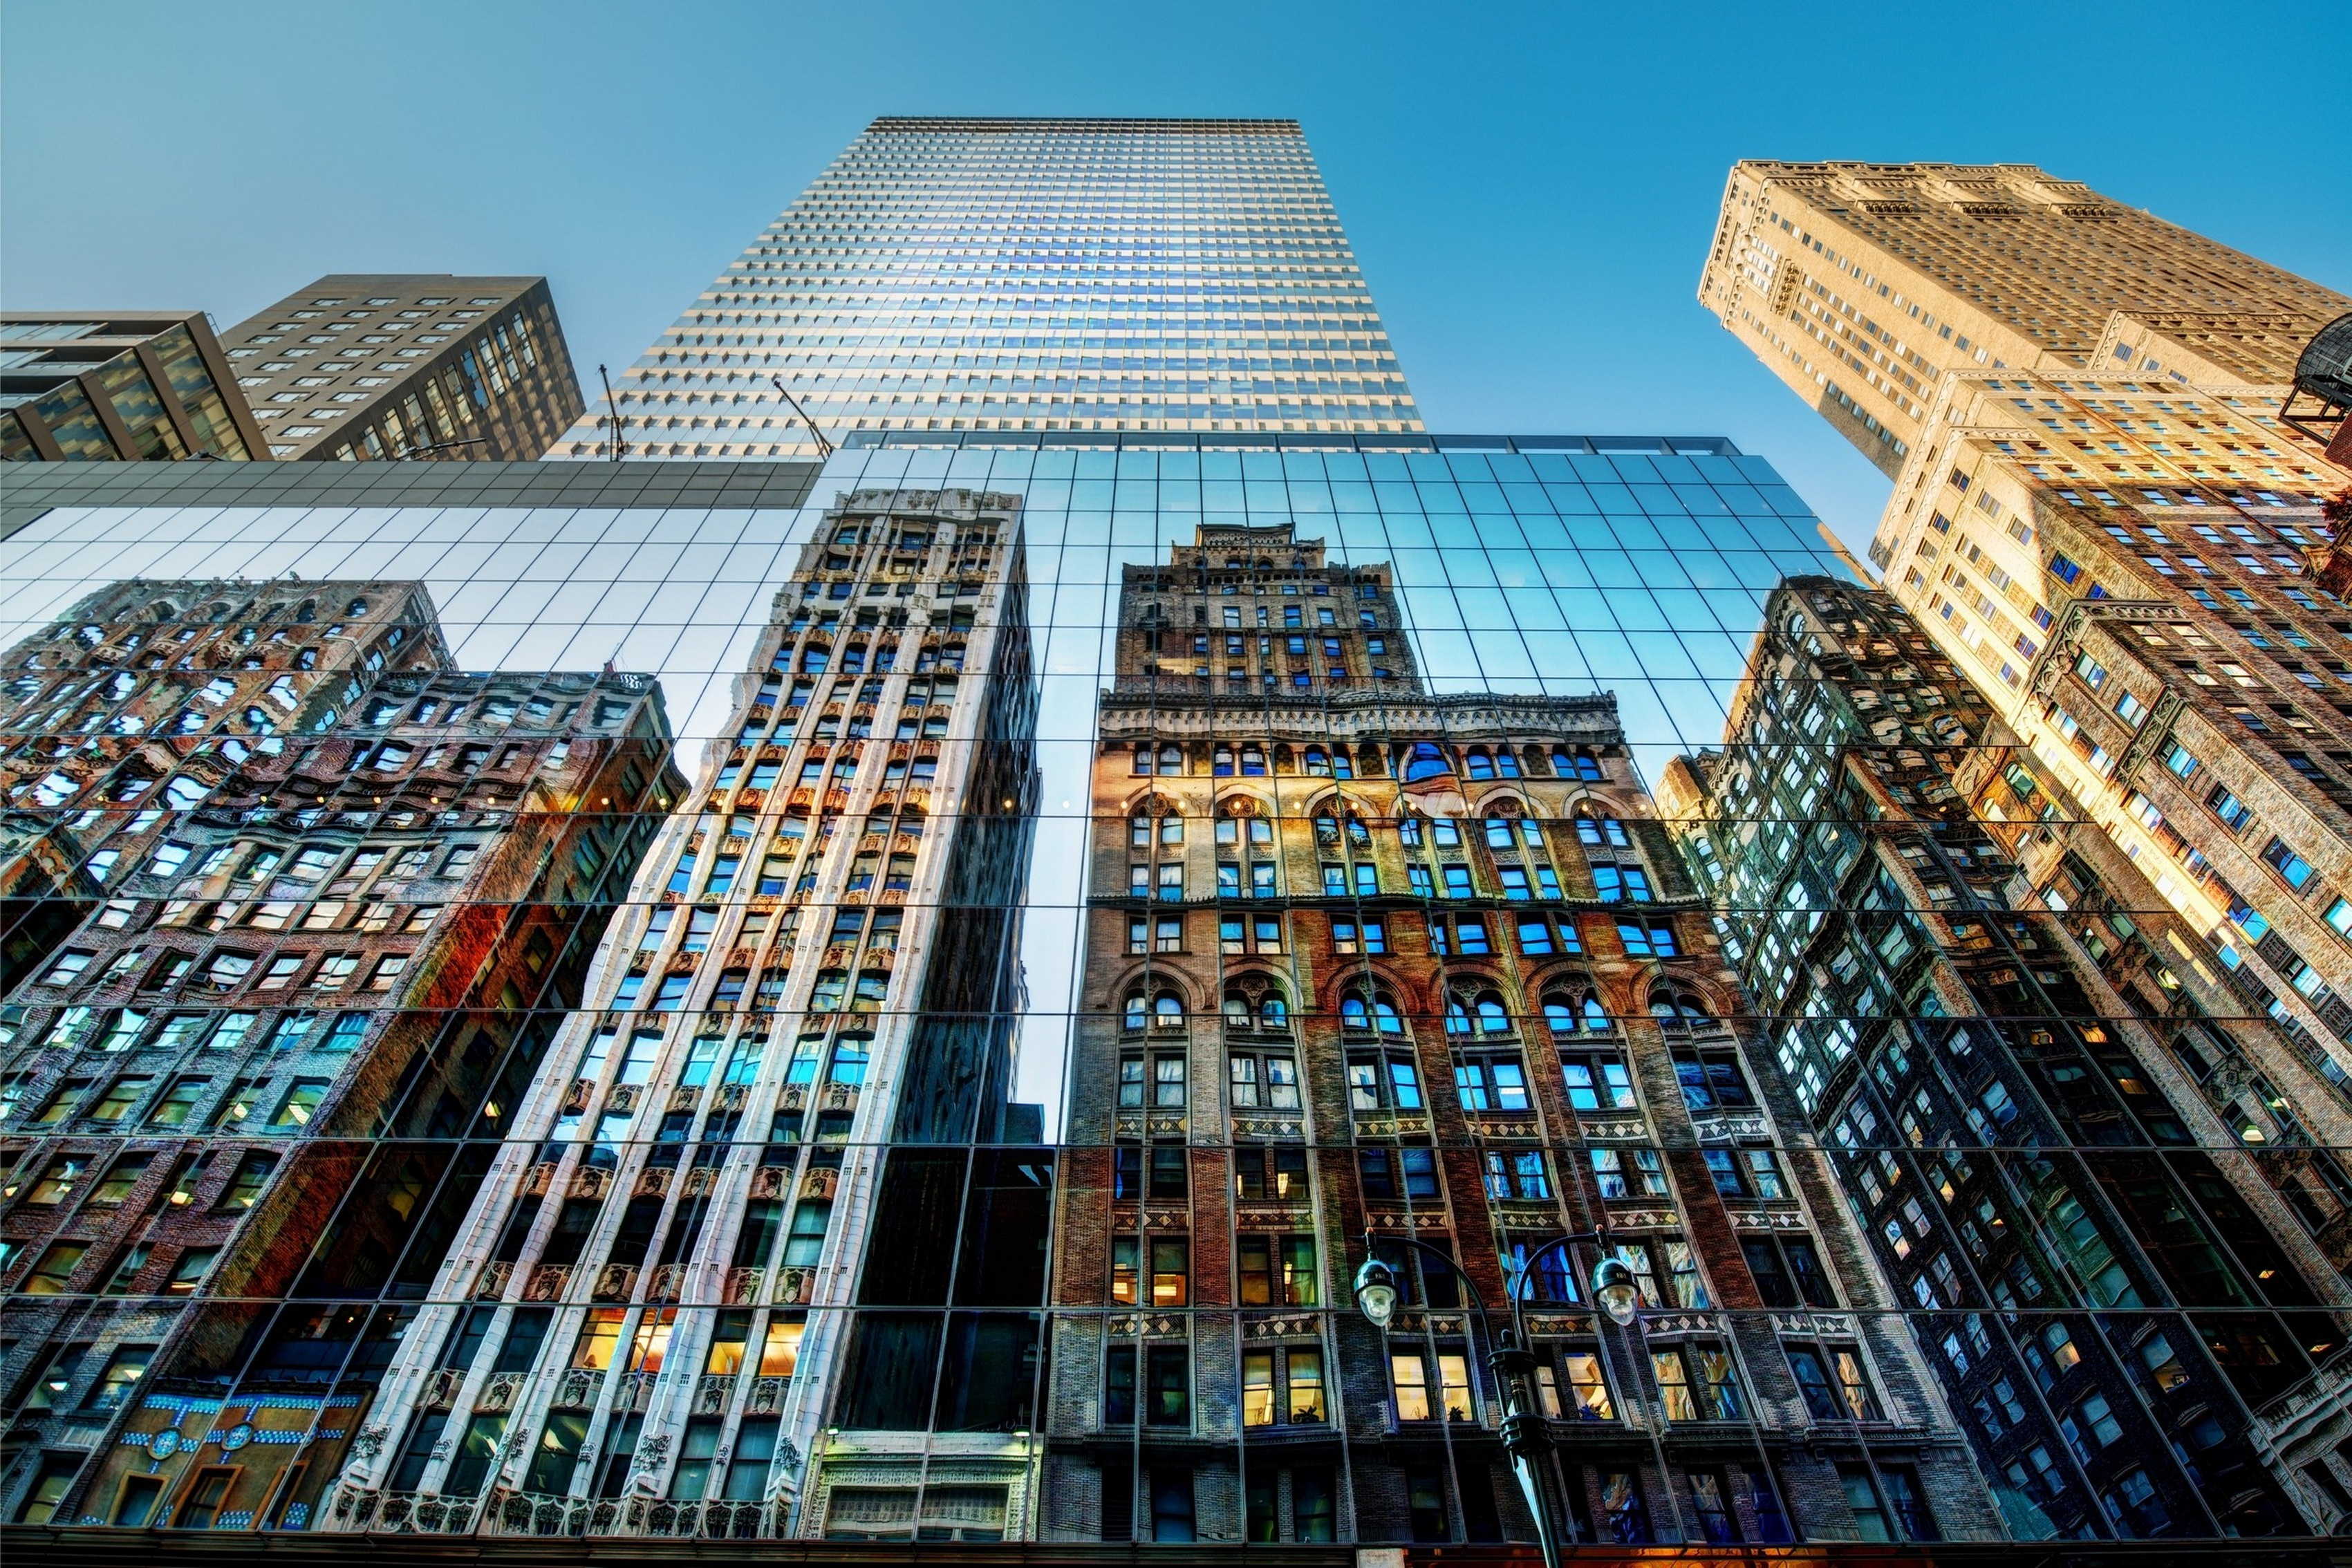 Home decoration skyscrapers HDR photography reflections low angle shot Trey Ratcliff blue skies Silk Fabric Poster Print 092FJ